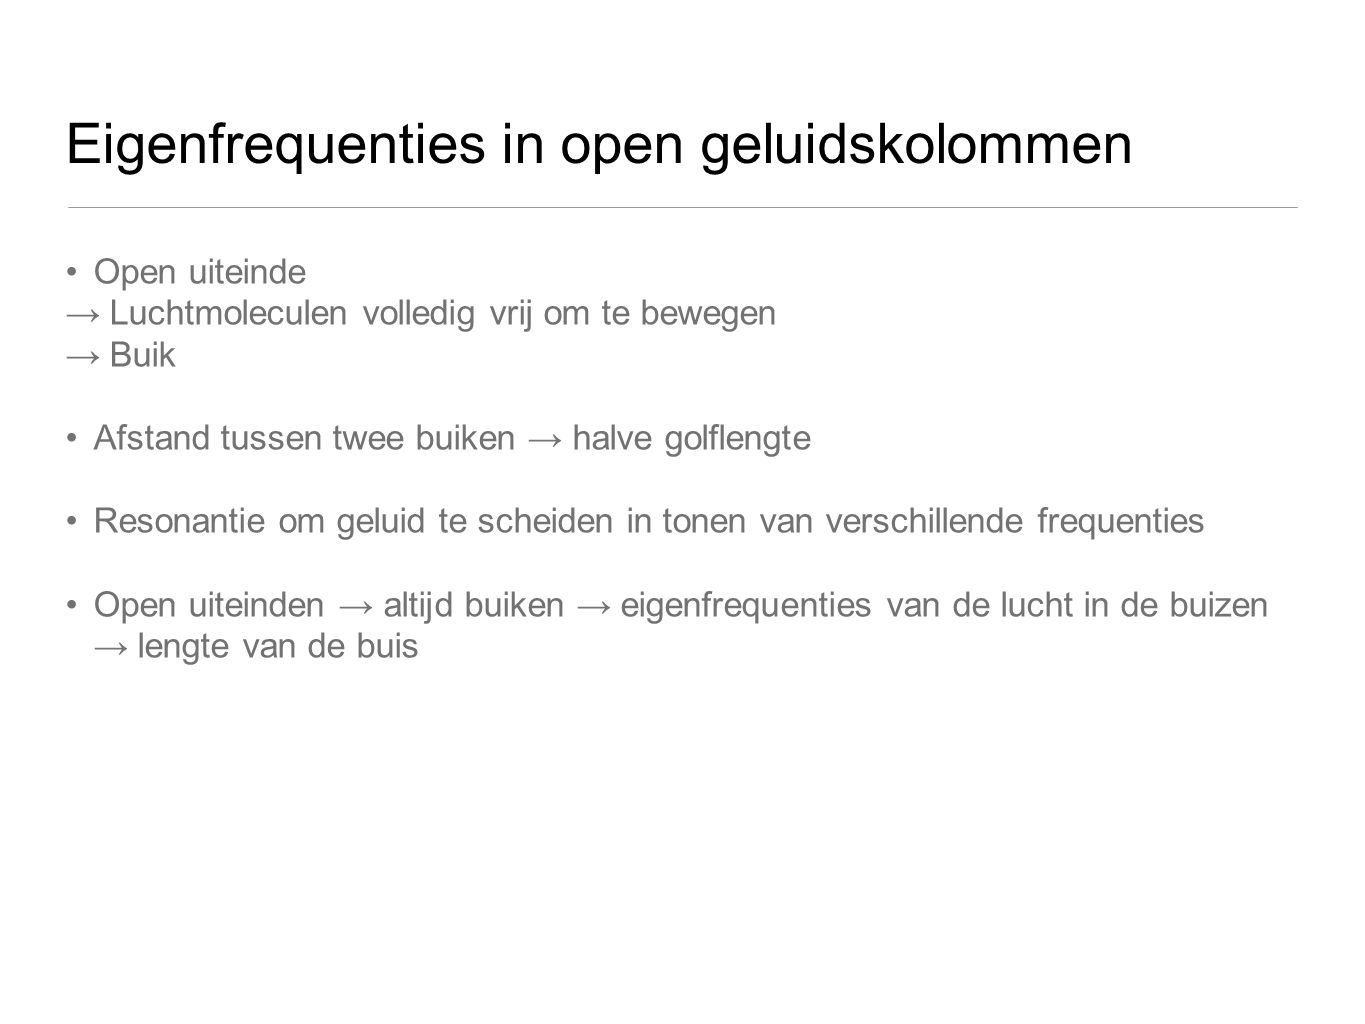 Eigenfrequenties in open geluidskolommen